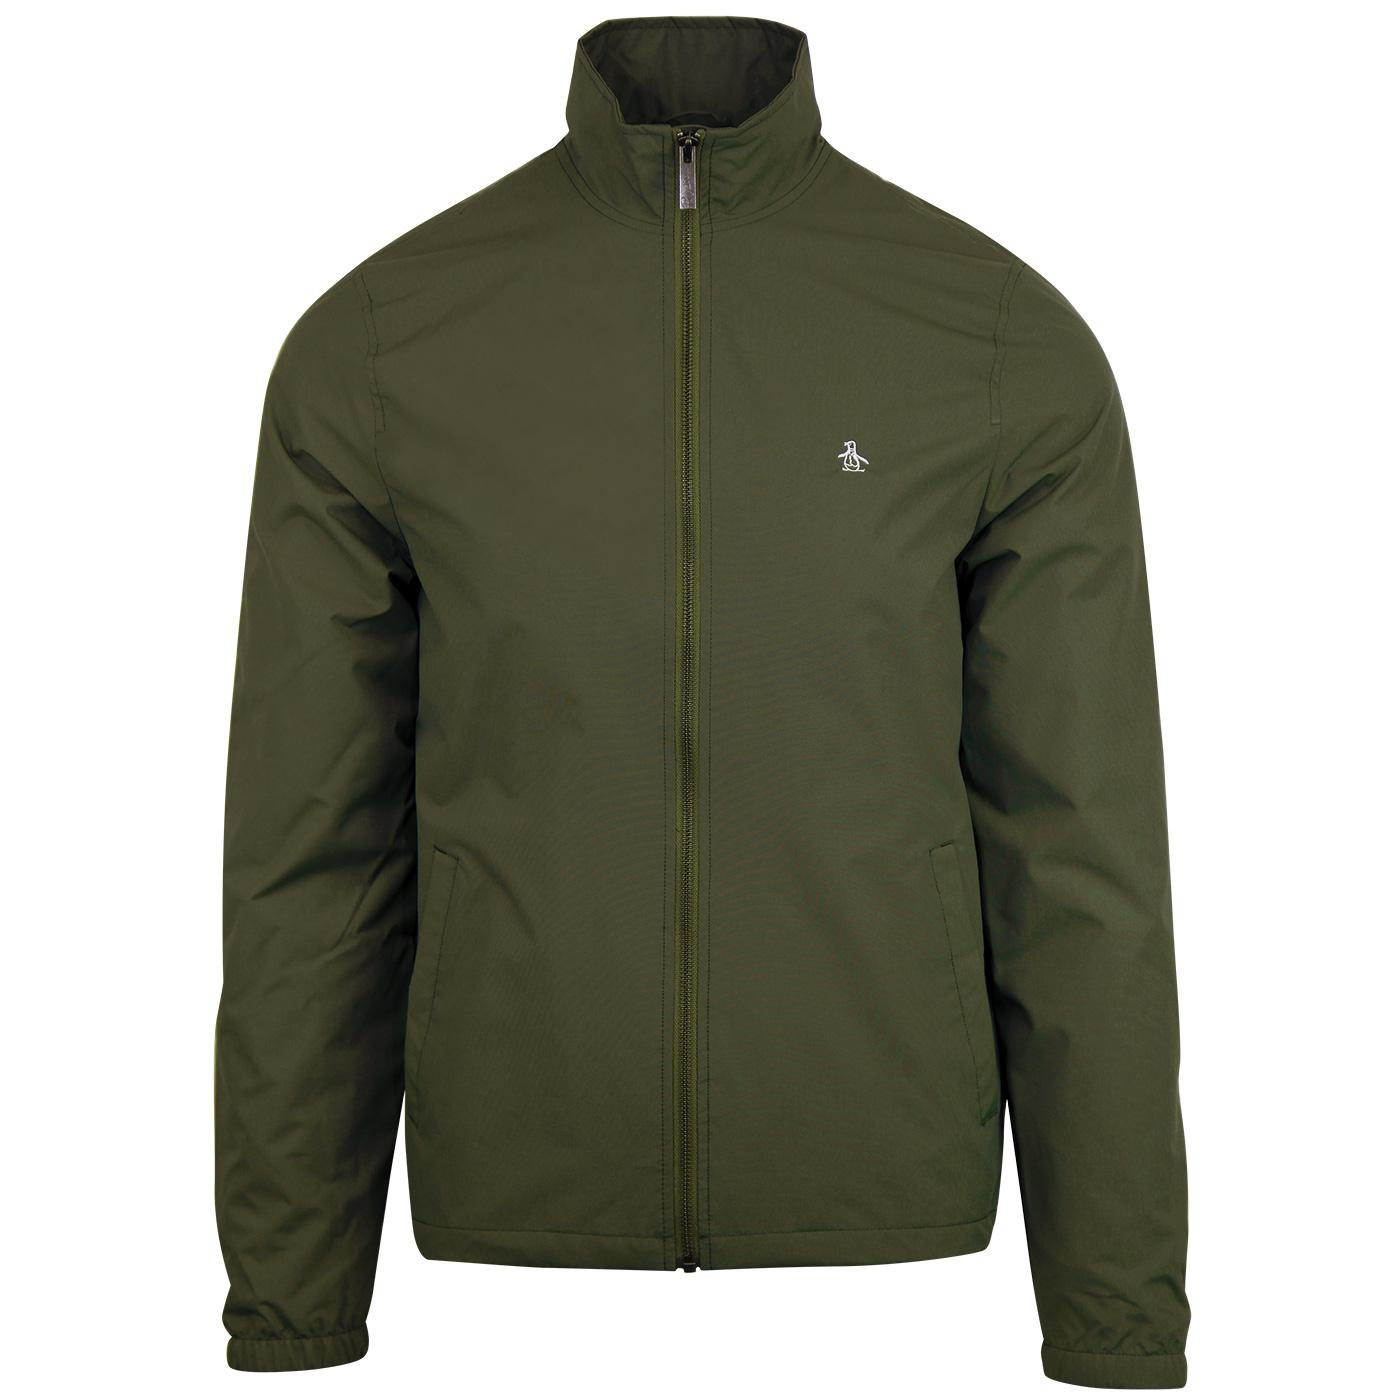 ORIGINAL PENGUIN Retro Windcheater Jacket - Green